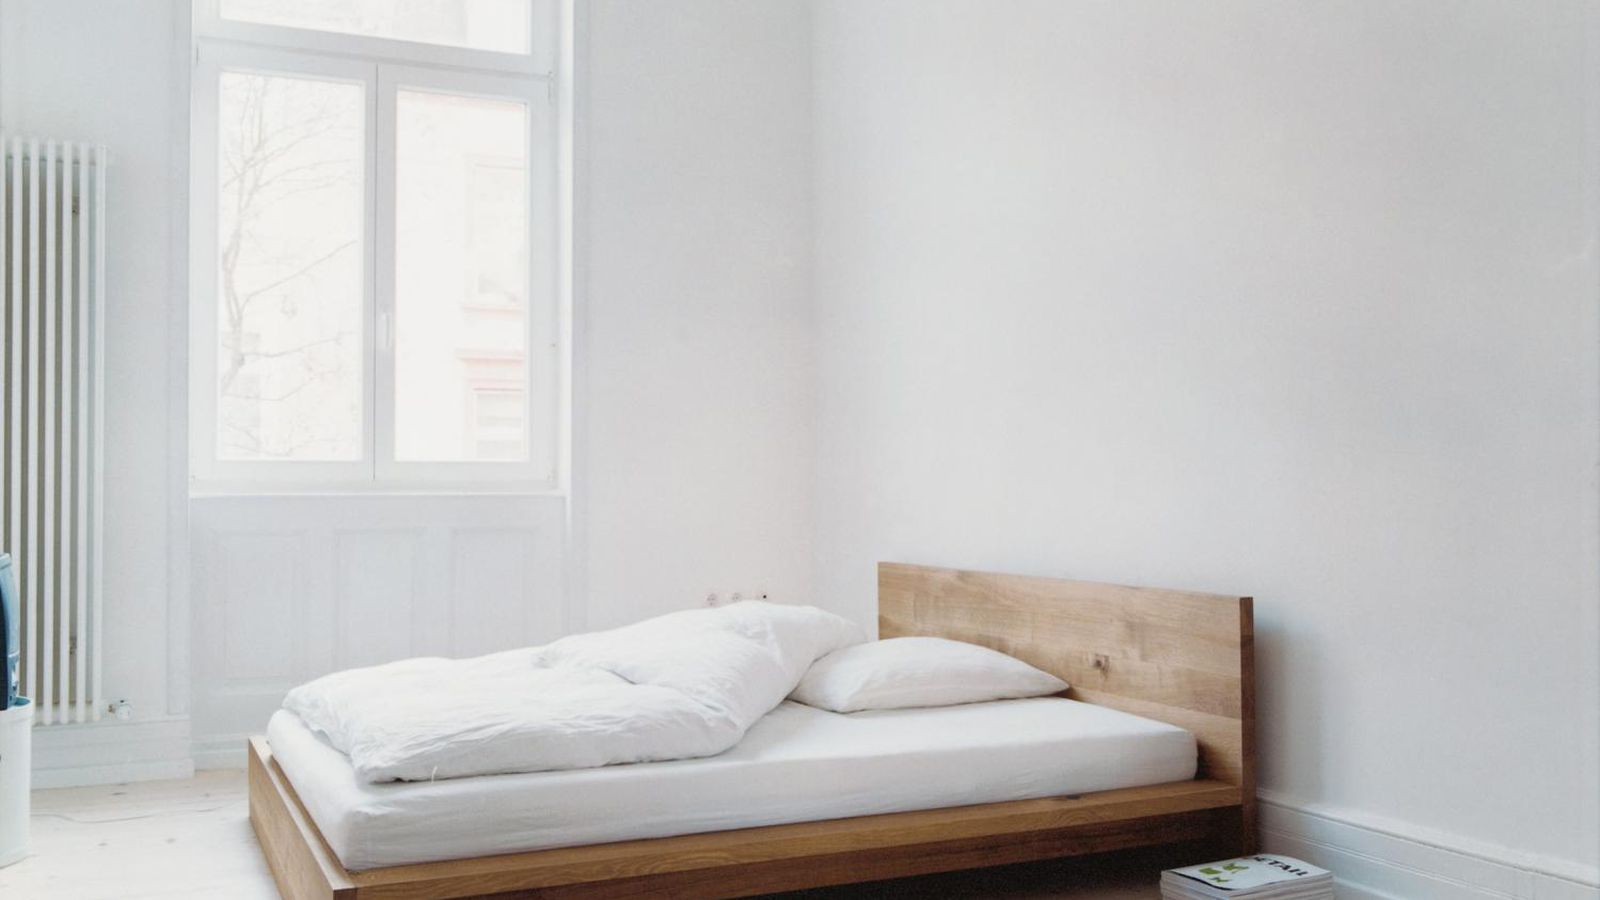 Ikea Sued For Allegedly Copying German Company S Bed Design Curbed